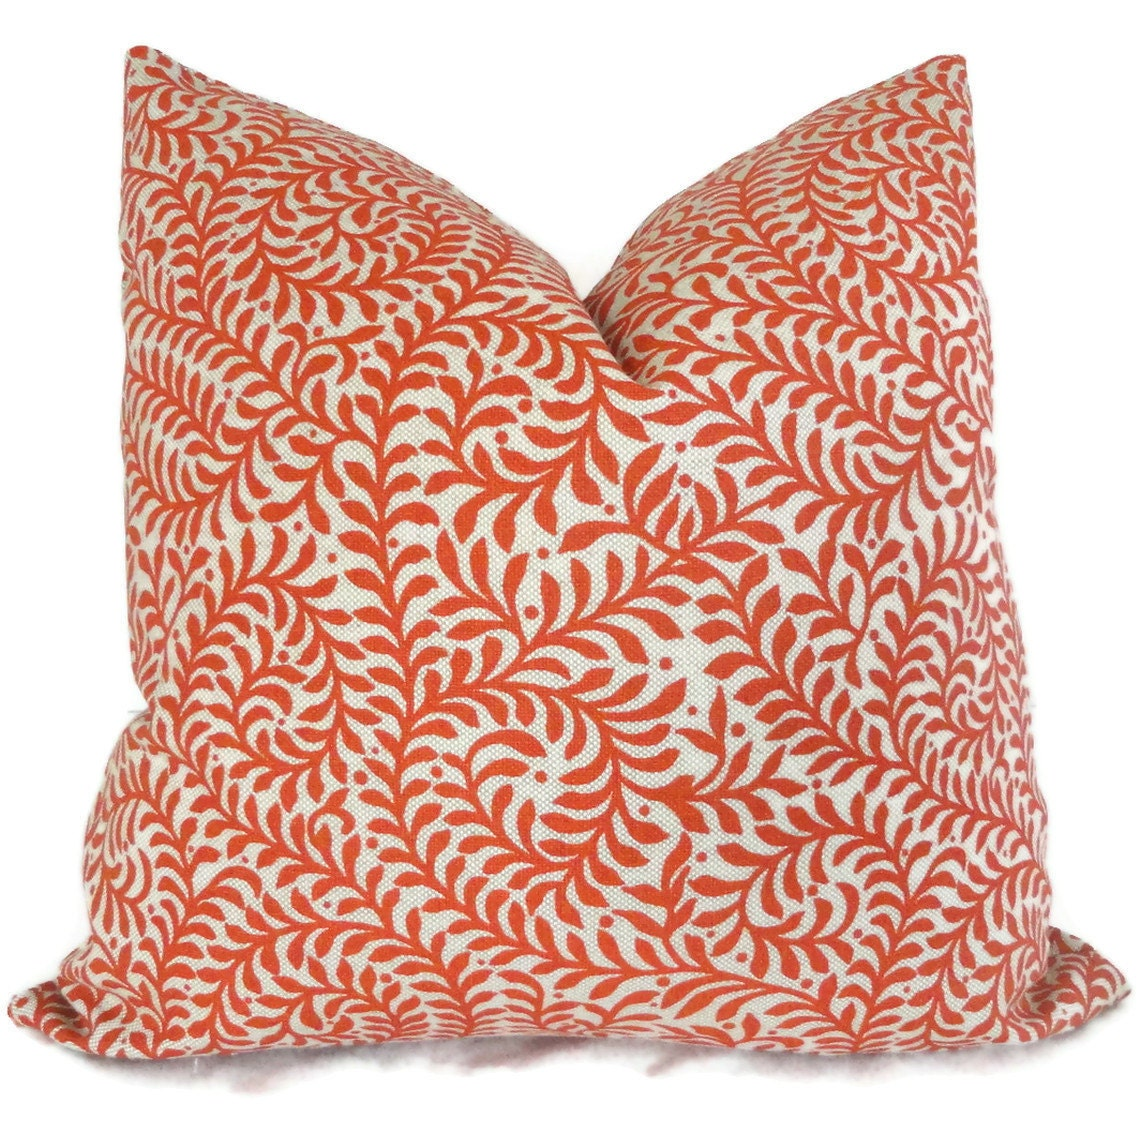 Orange Swirled Branches Decorative Pillow Cover